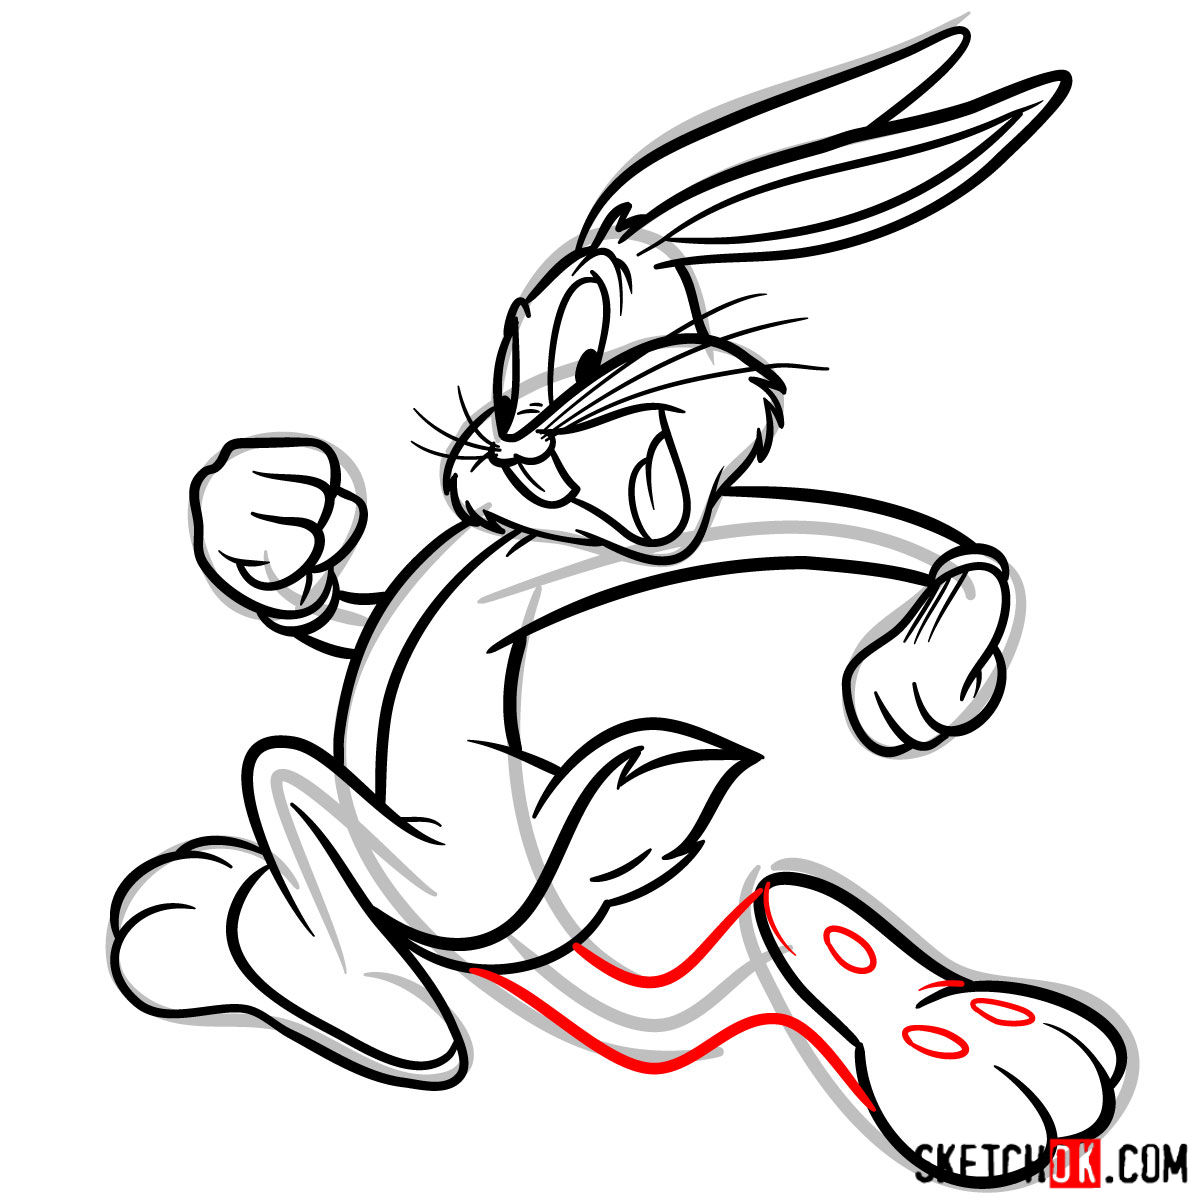 How to draw Bugs Bunny running - step 12